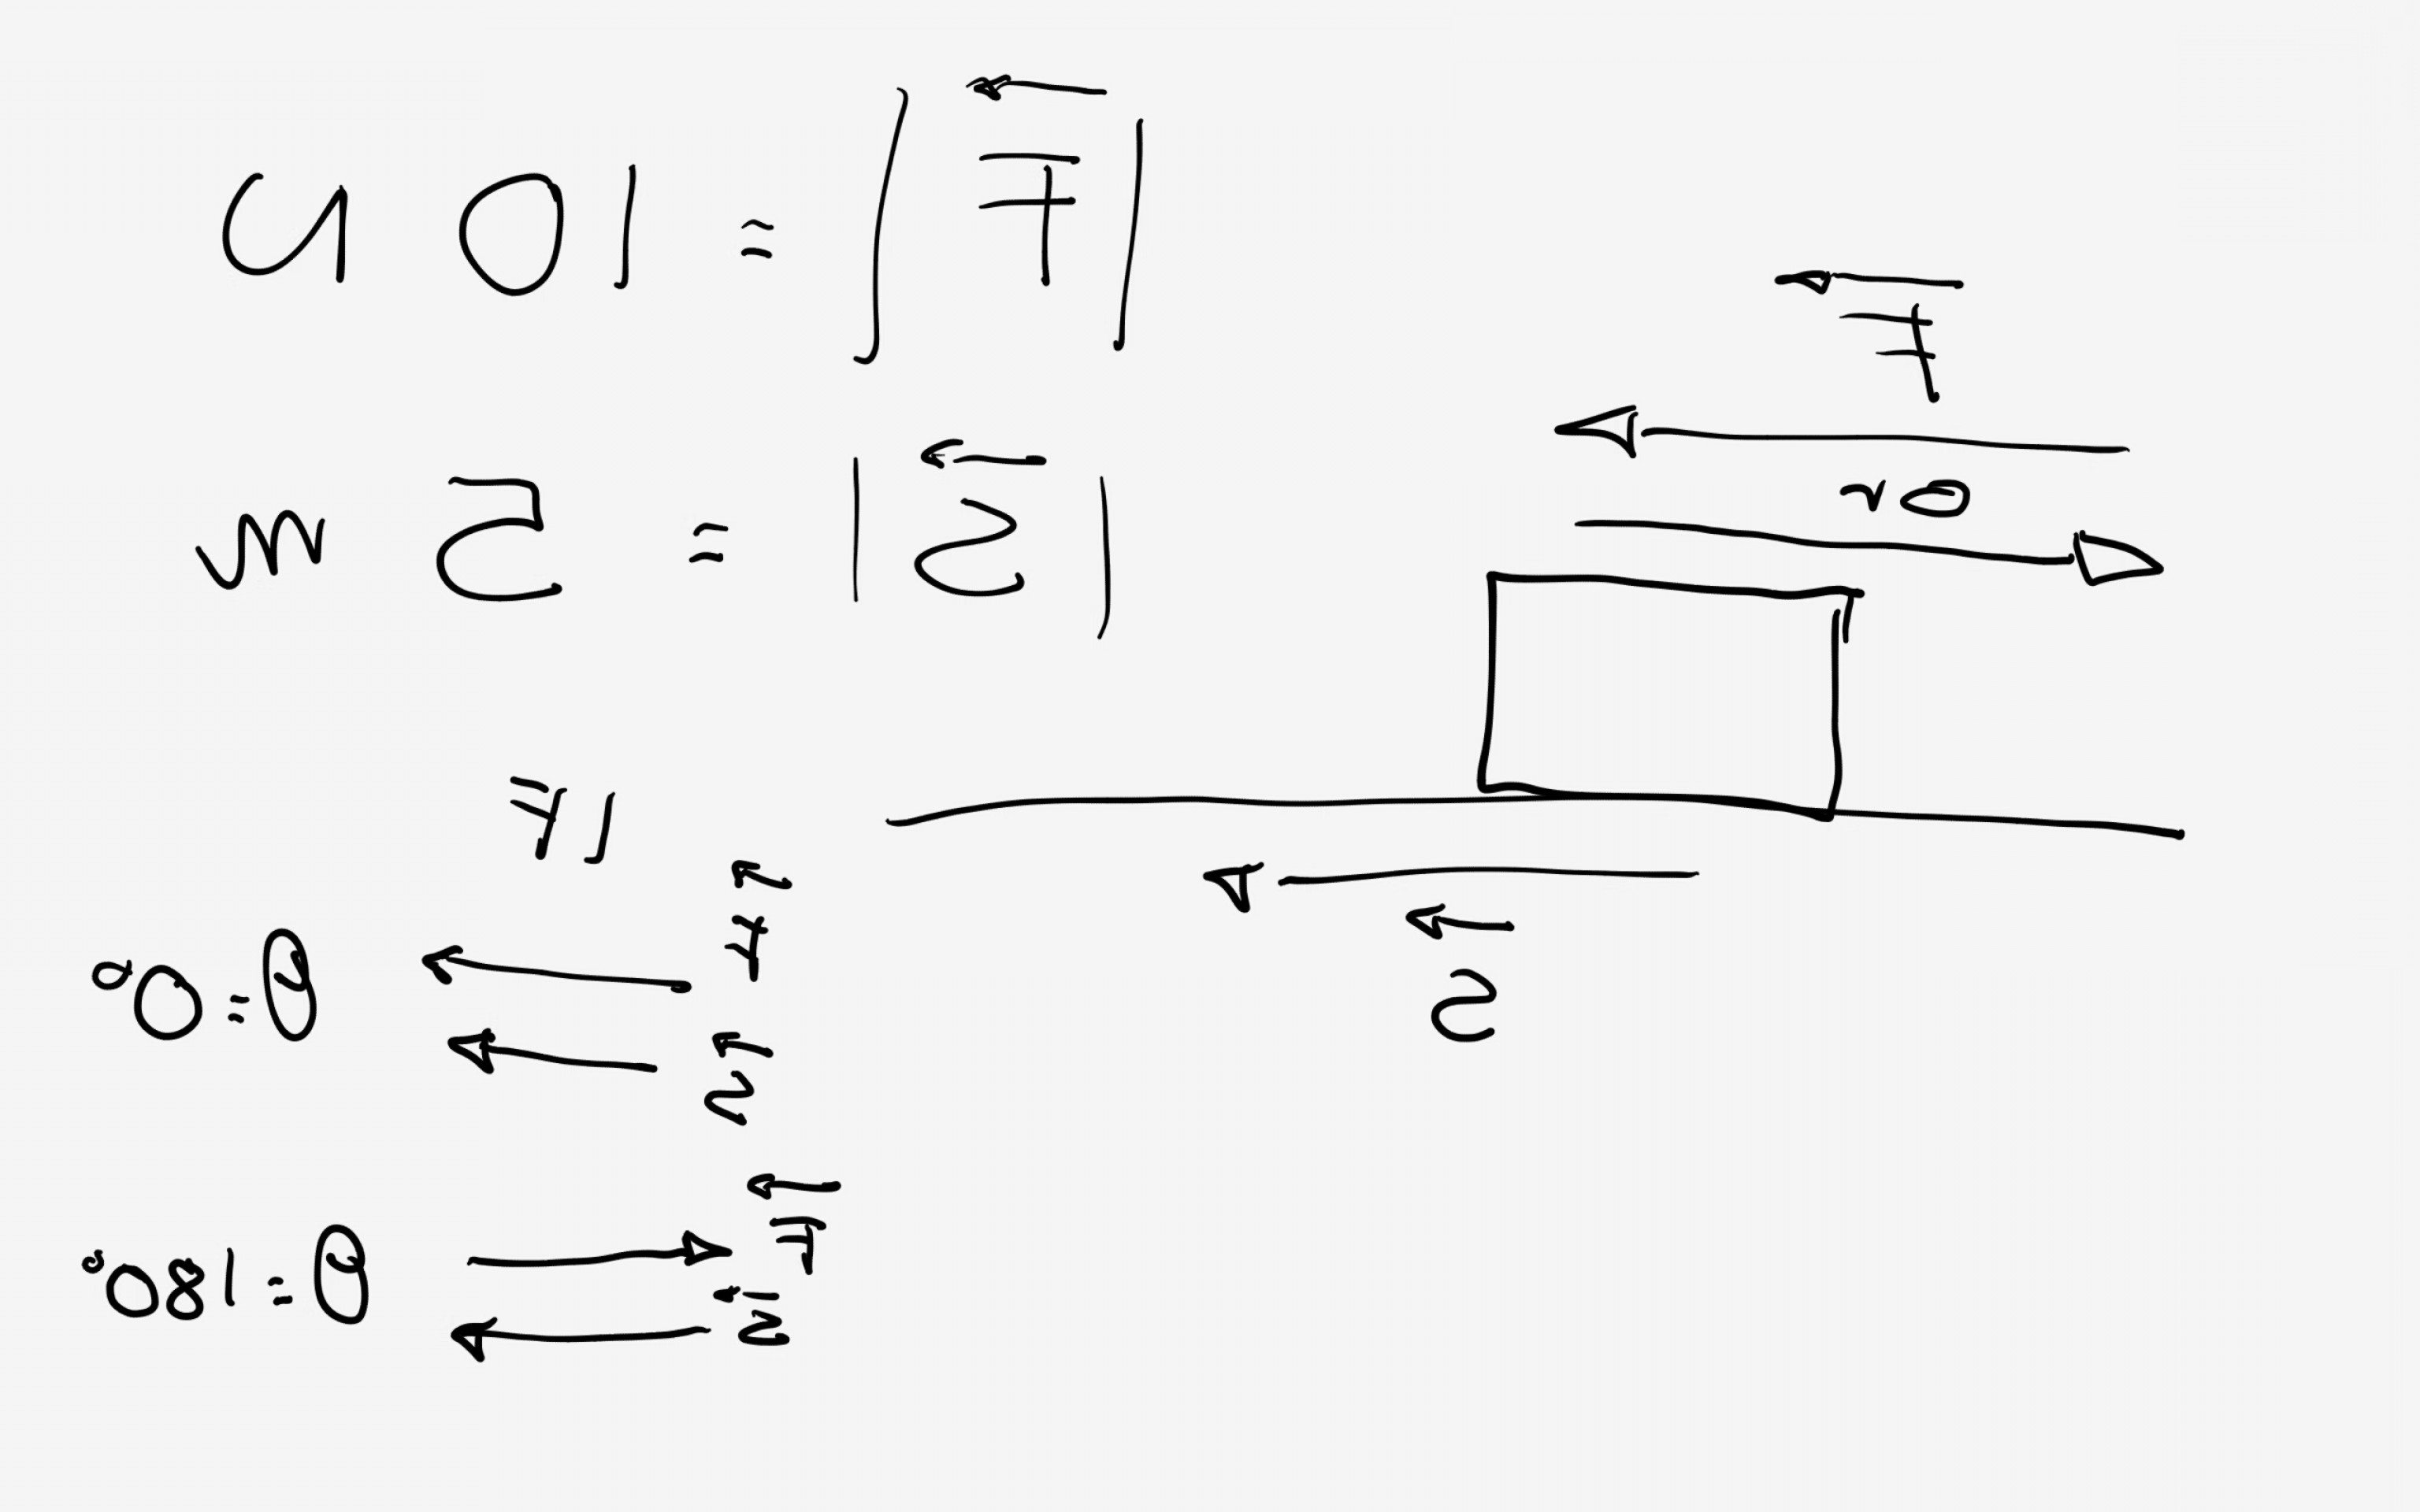 When Two Vectors Are Parallel: What Is The Dot Product Of Two Vectors That Are Parallel